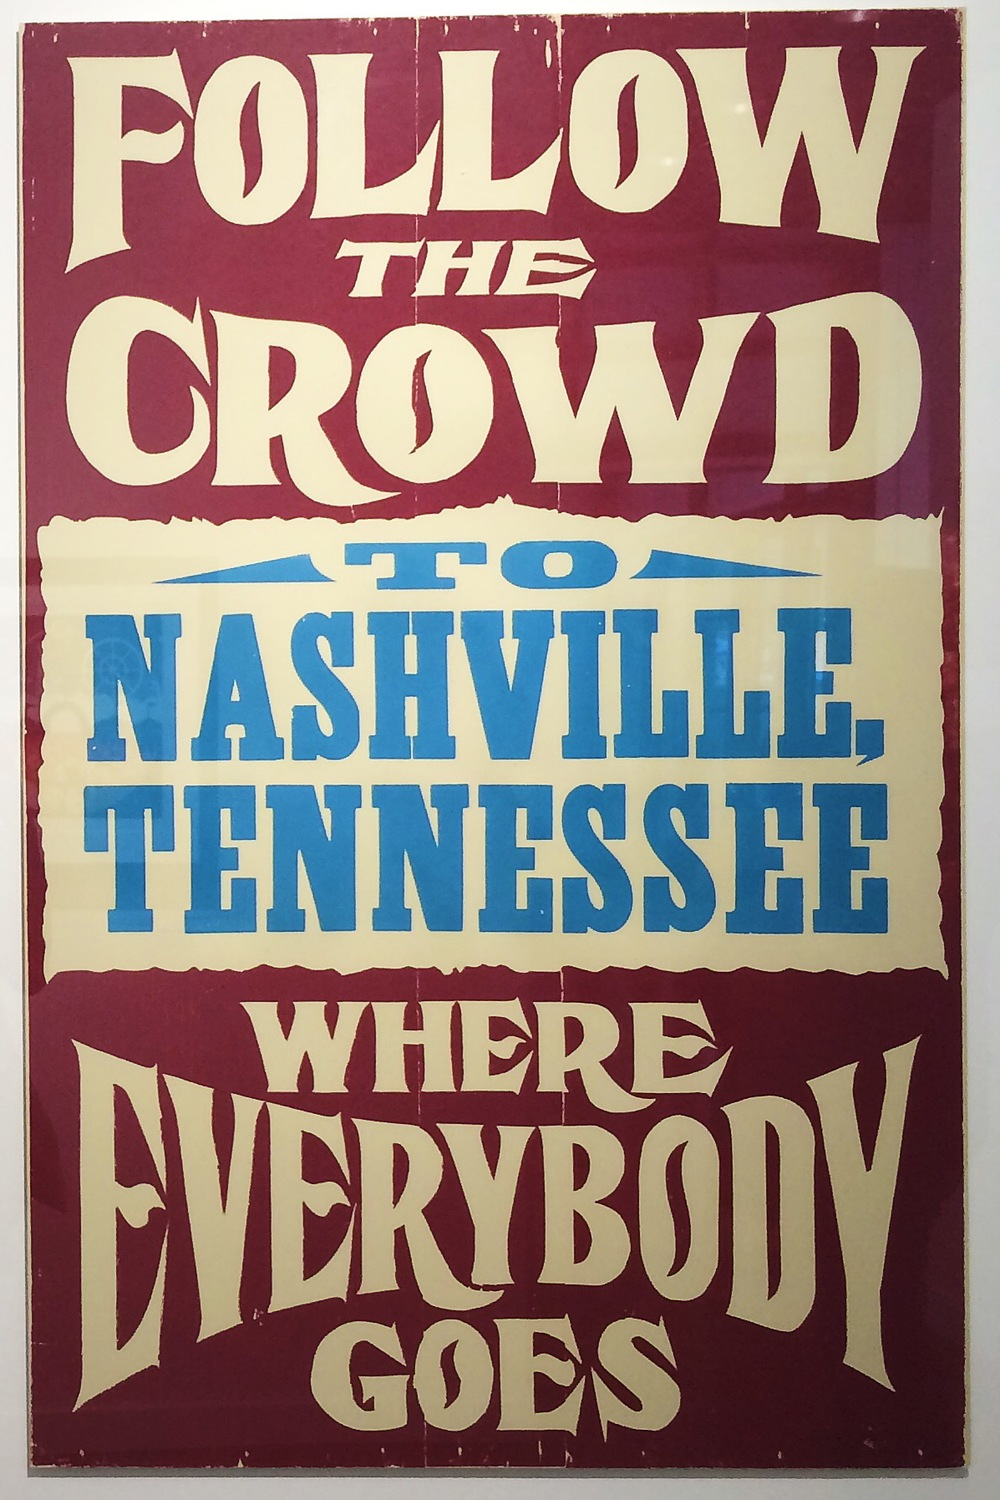 Print from the legendary Hatch Show Print Shop